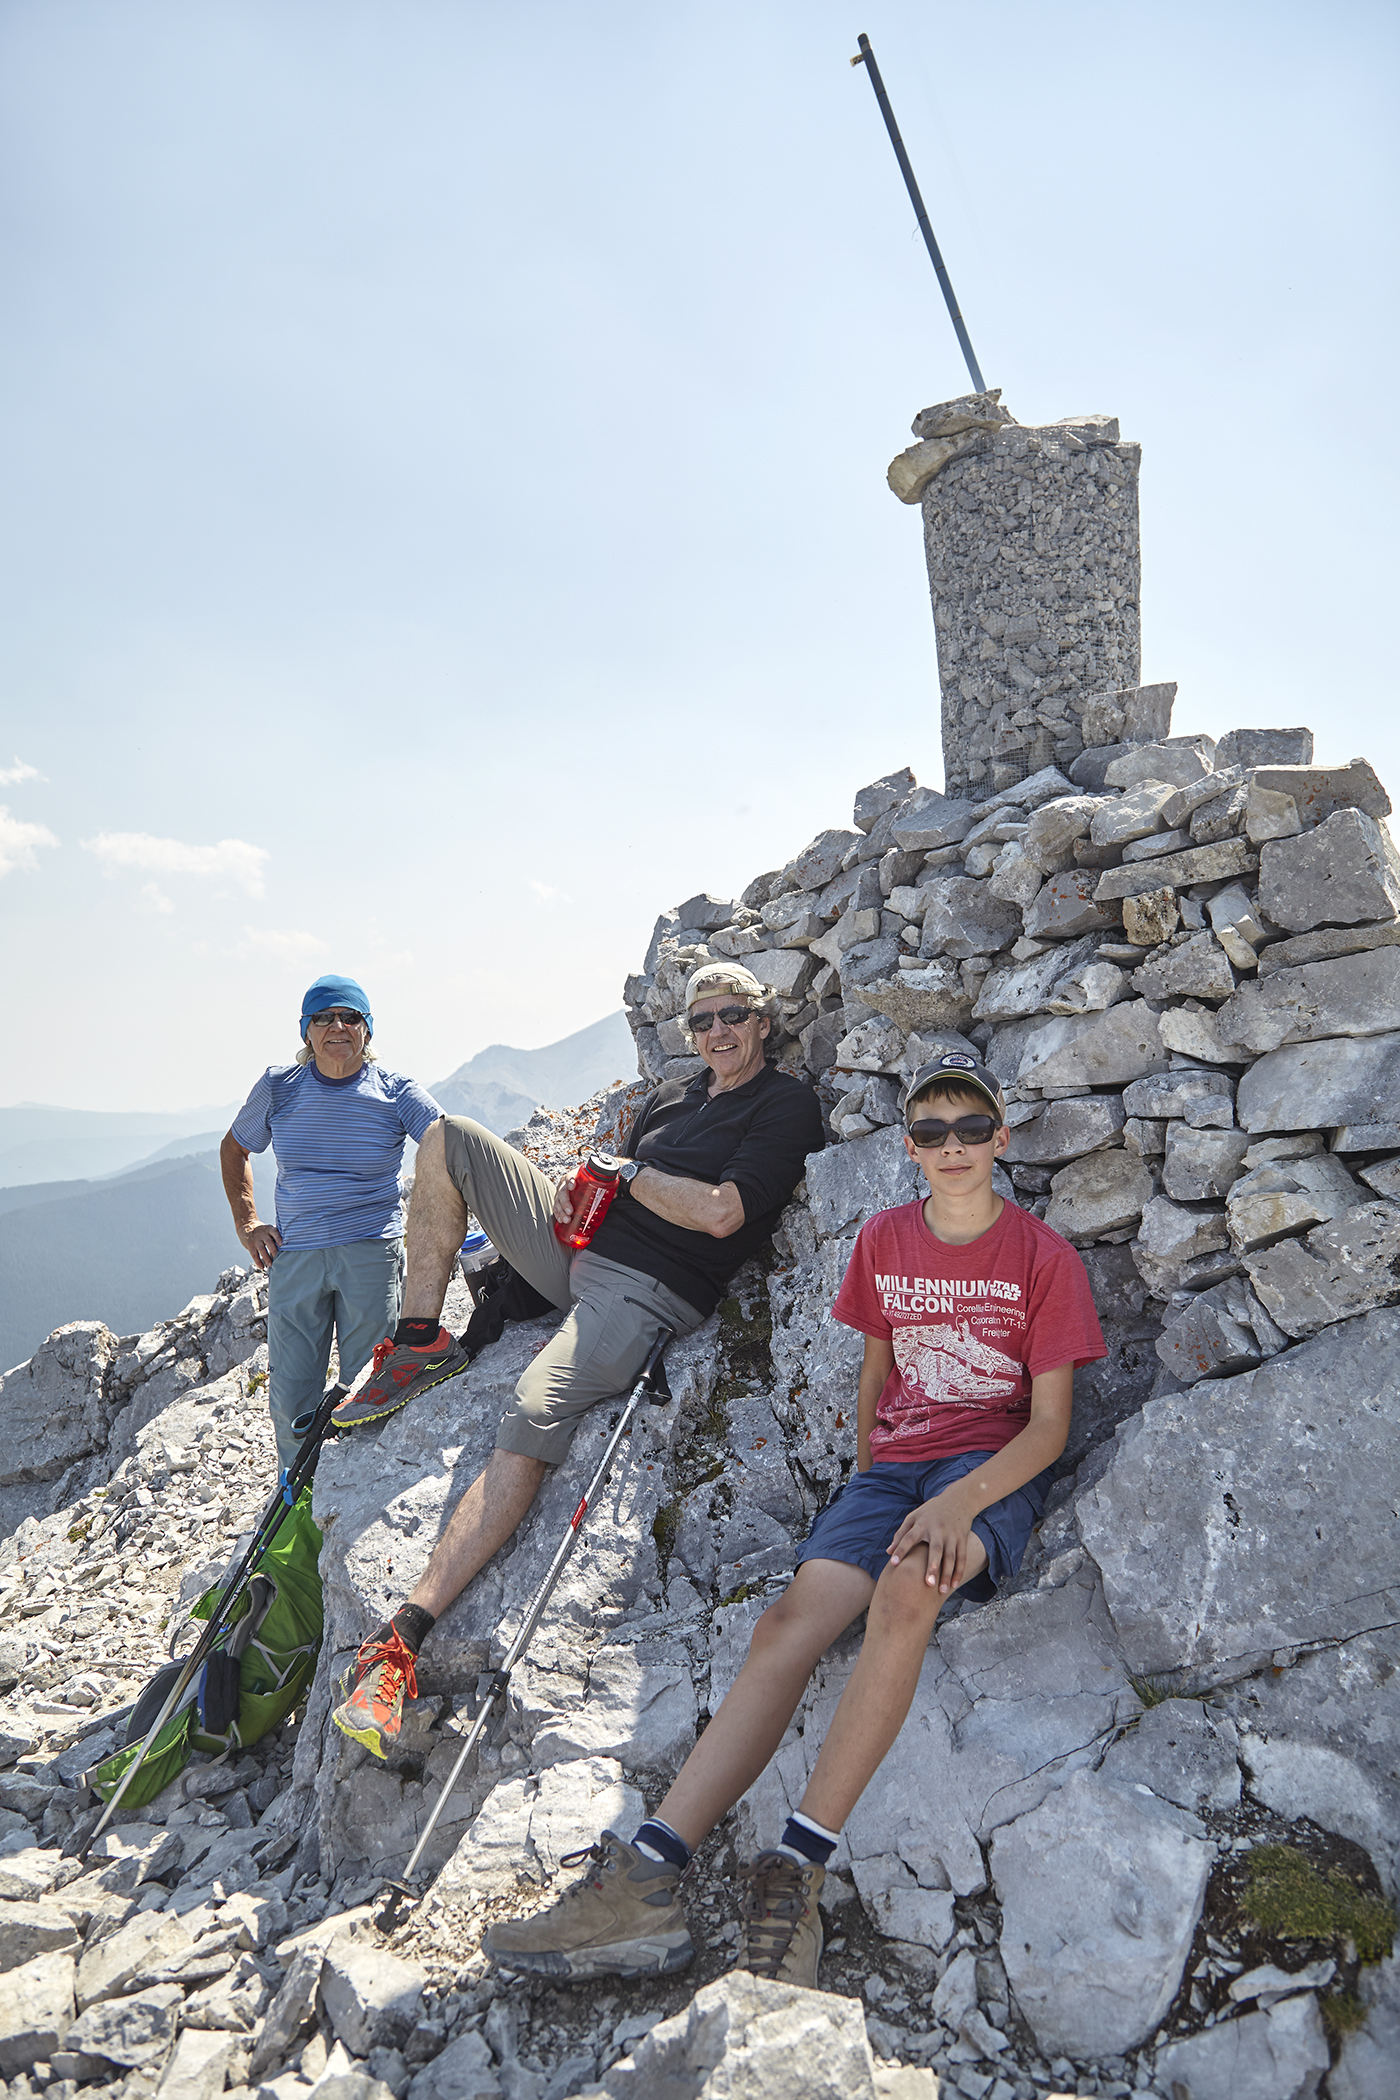 Milan, Wayne and Yuri sit under the strange summit cairn.